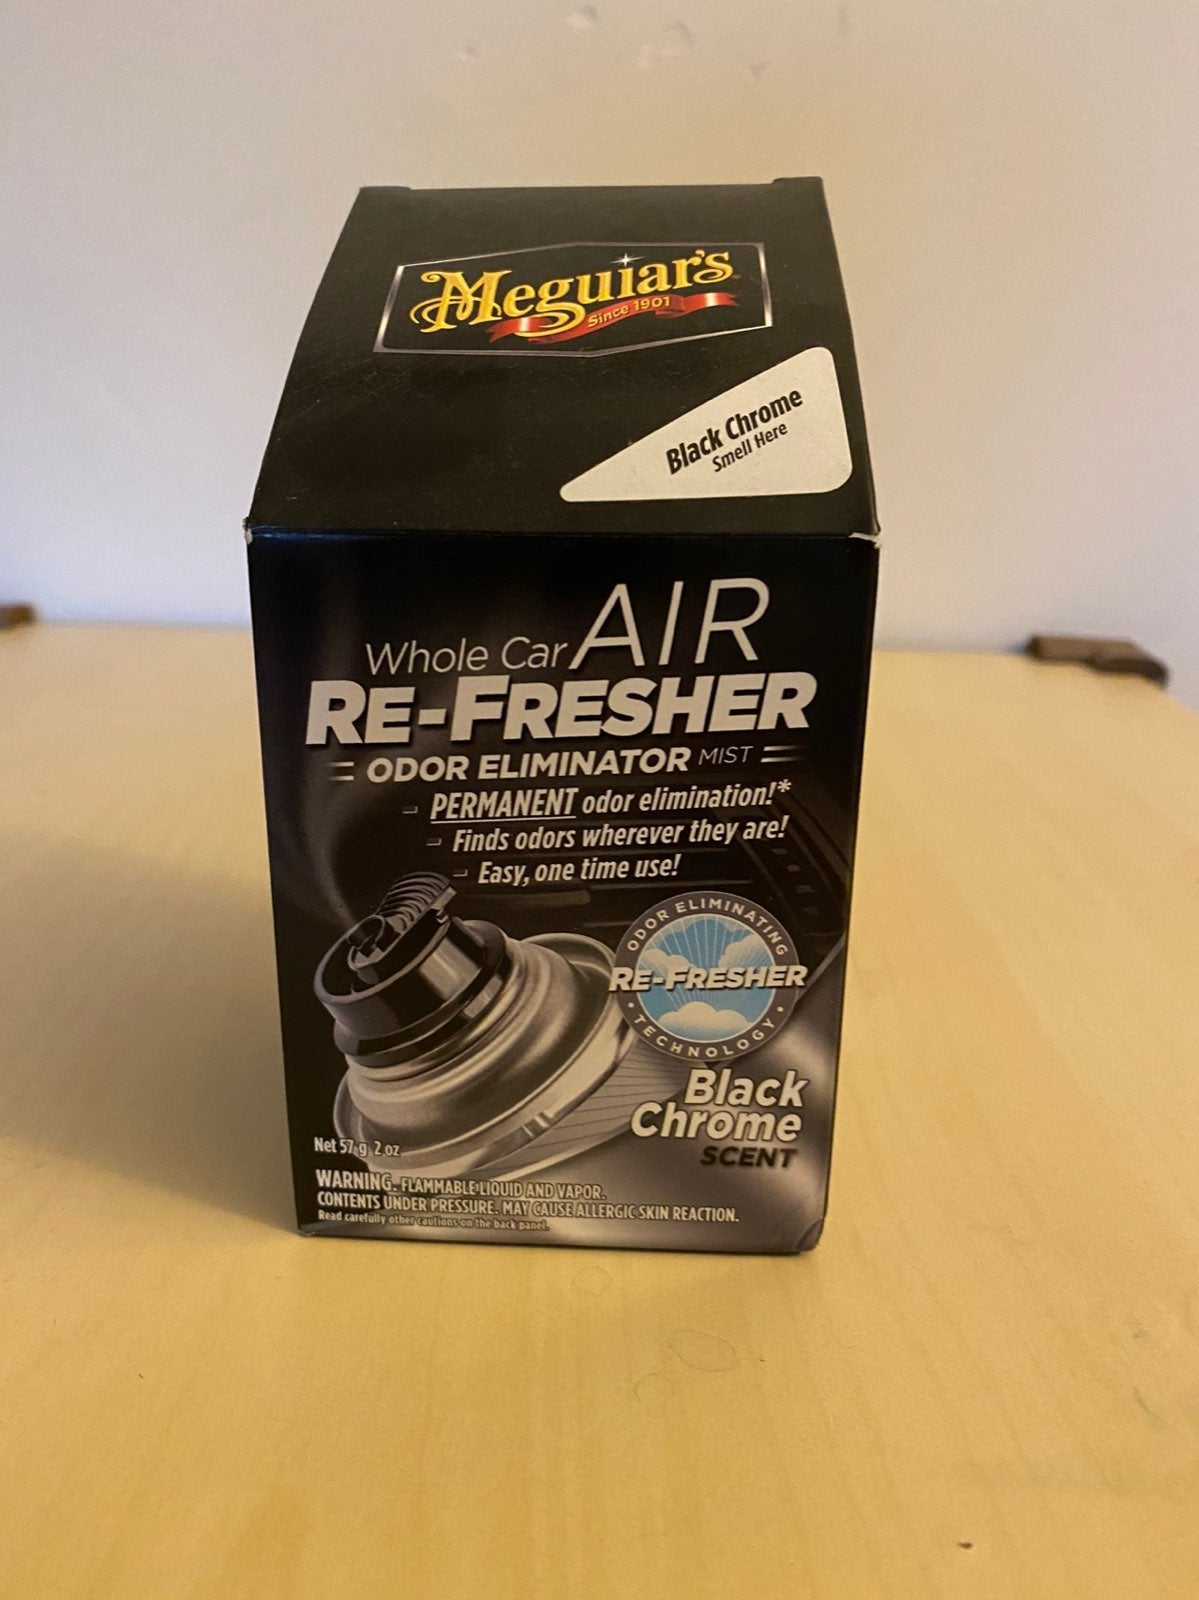 Meguiar's whole car air re-fresher odor